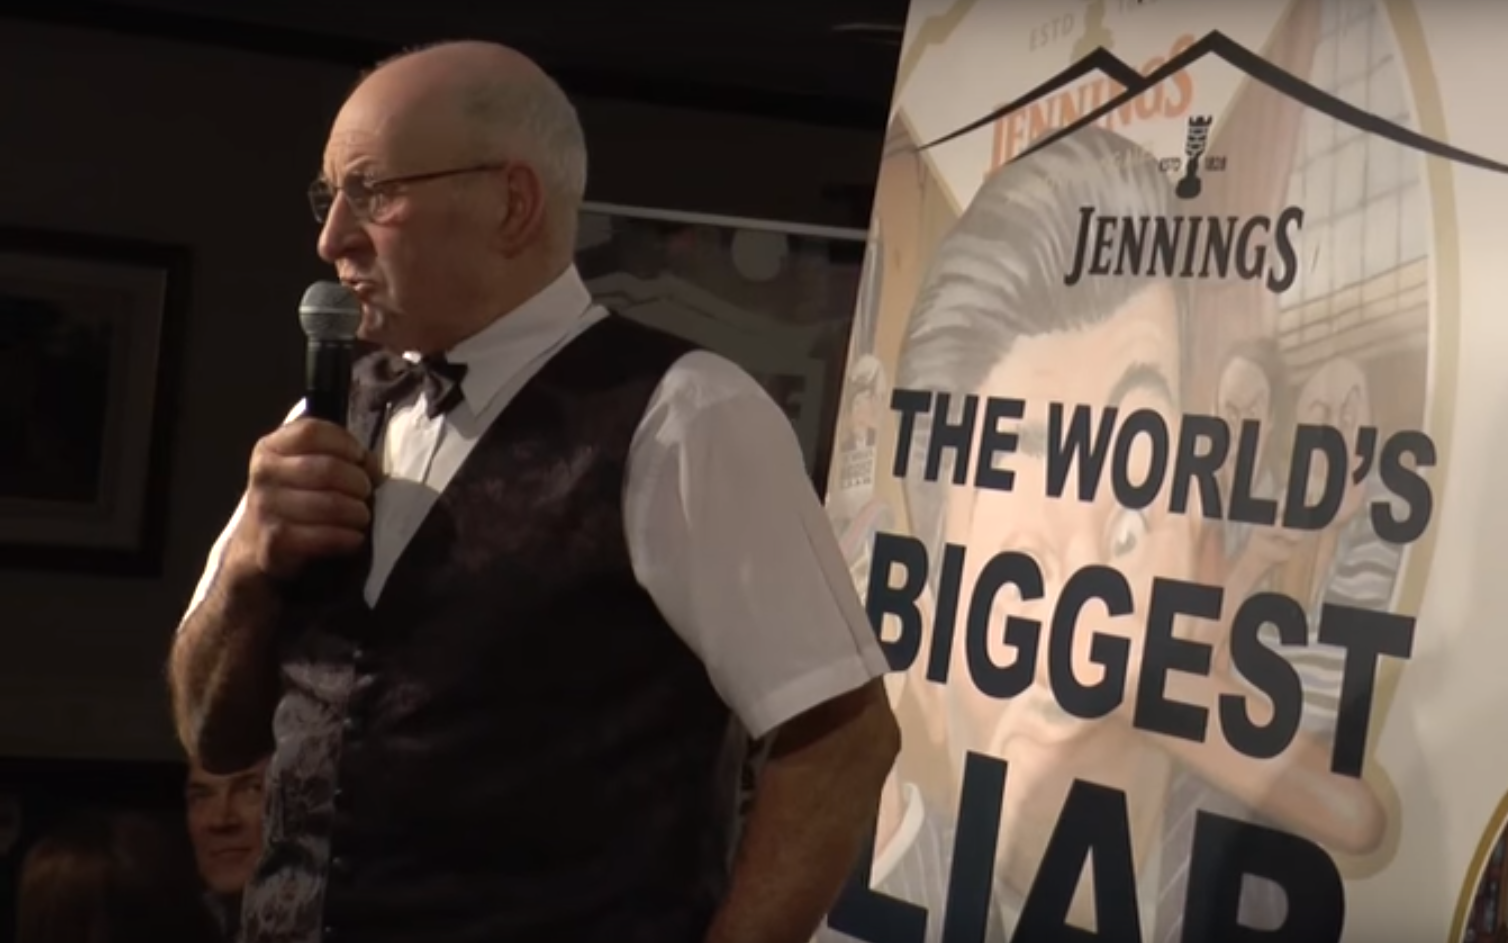 This guy's the biggest liar in the world… and he's proud of it